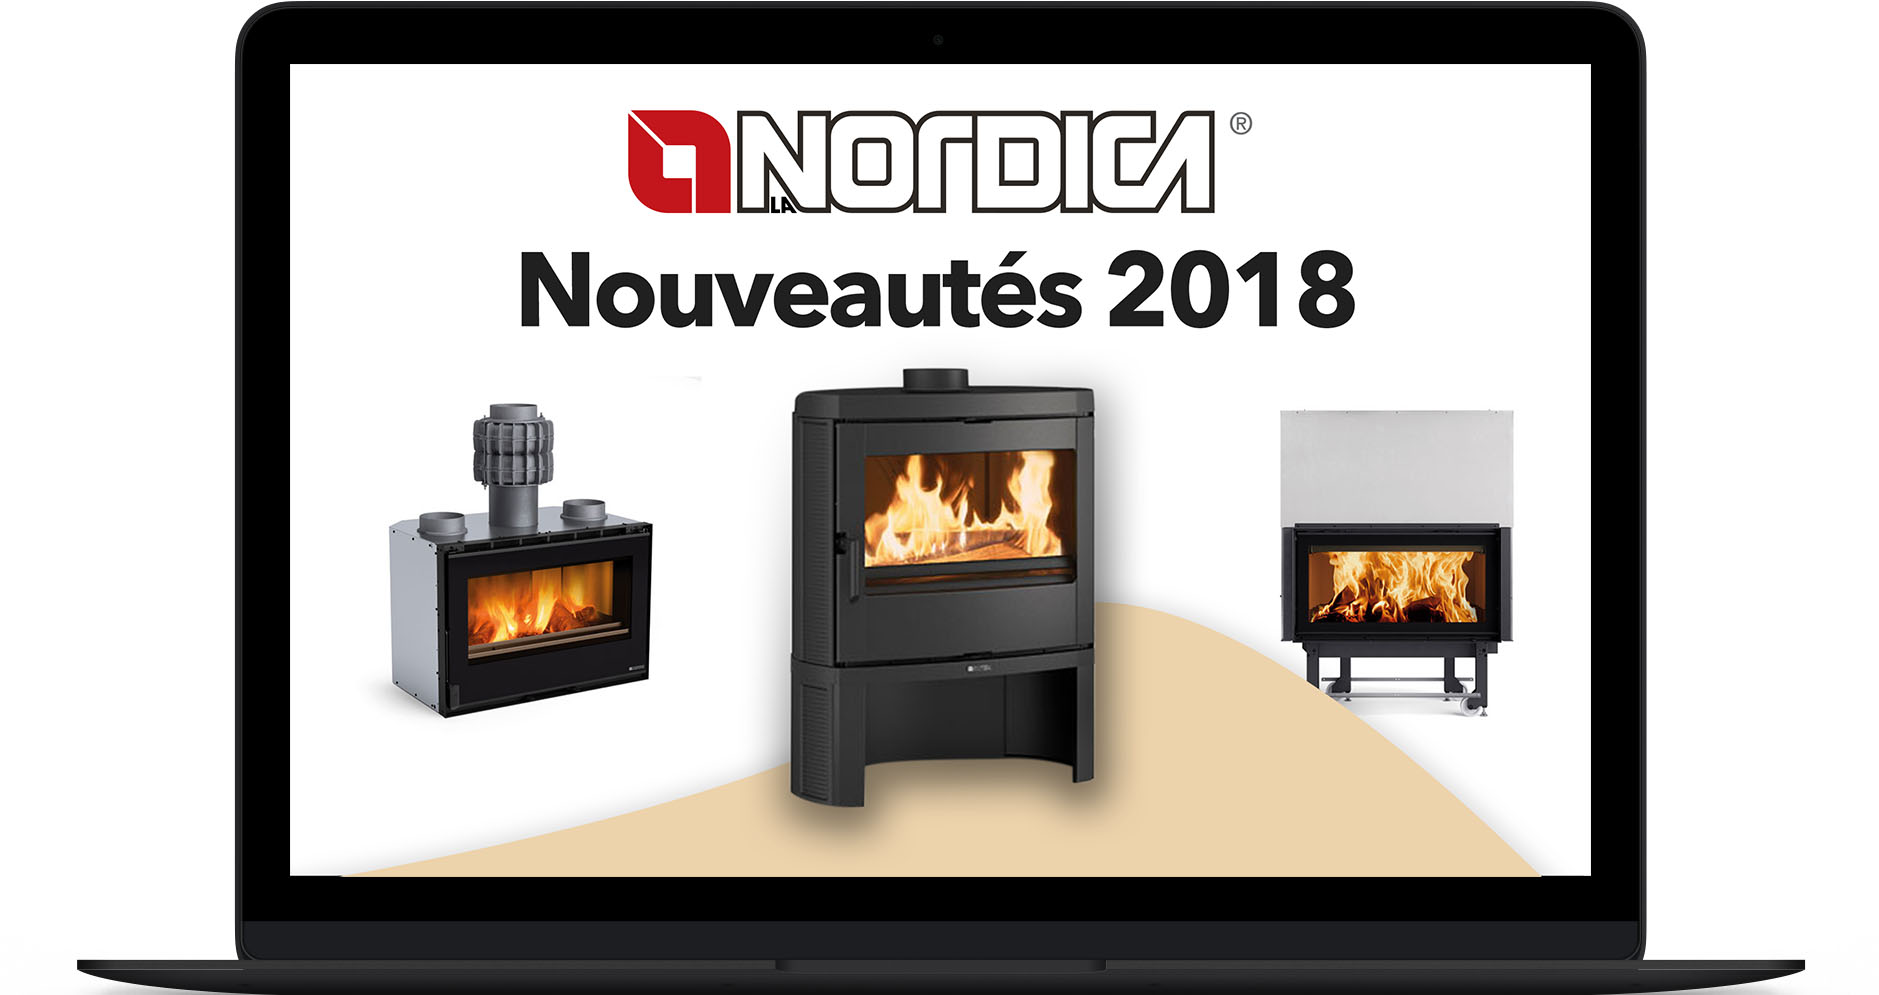 La Nordica Newsletter 2018